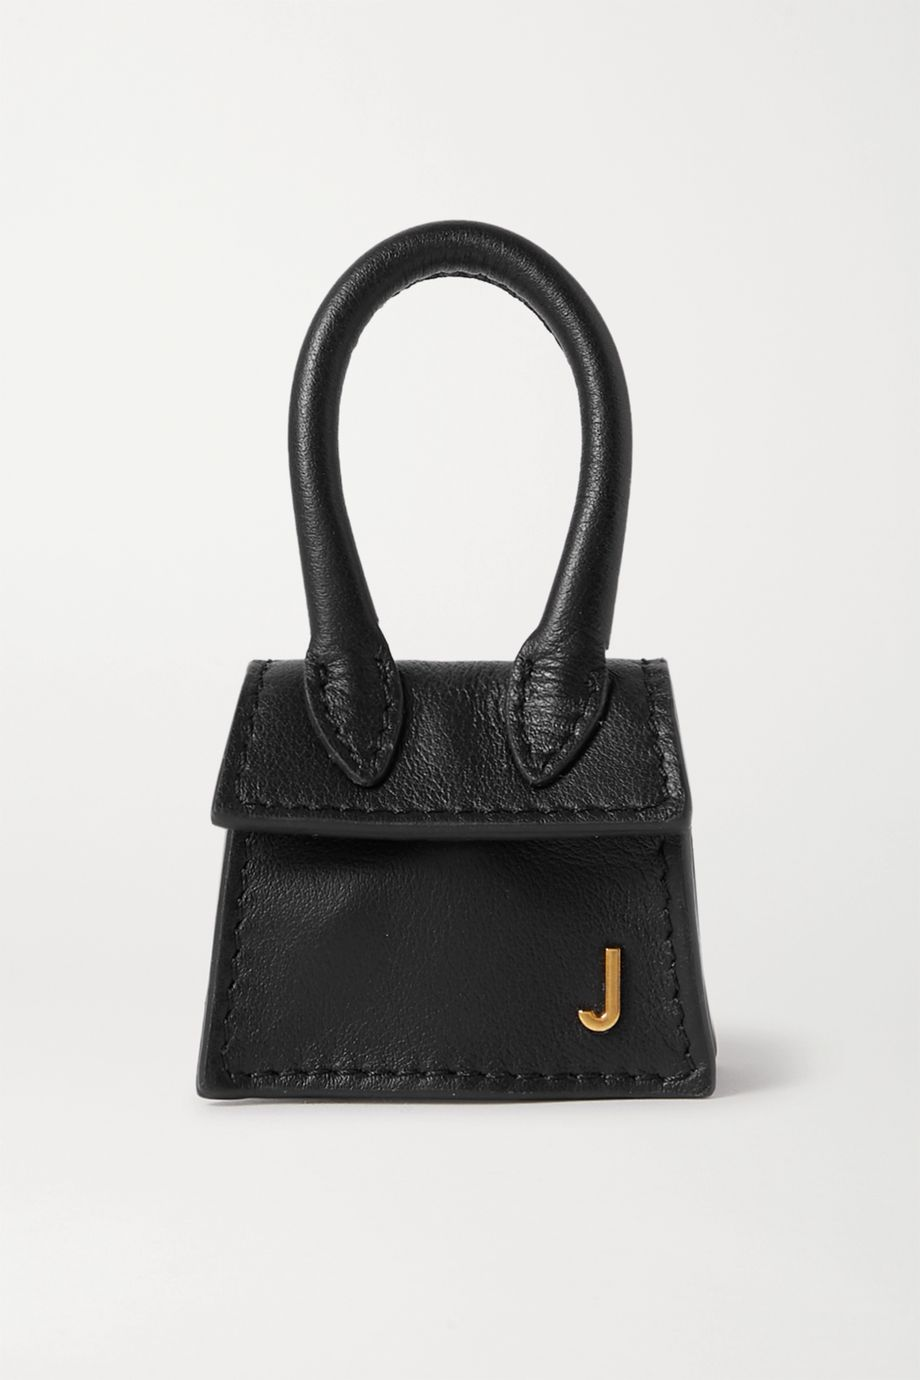 Jacquemus Le Chiquito micro textured-leather tote